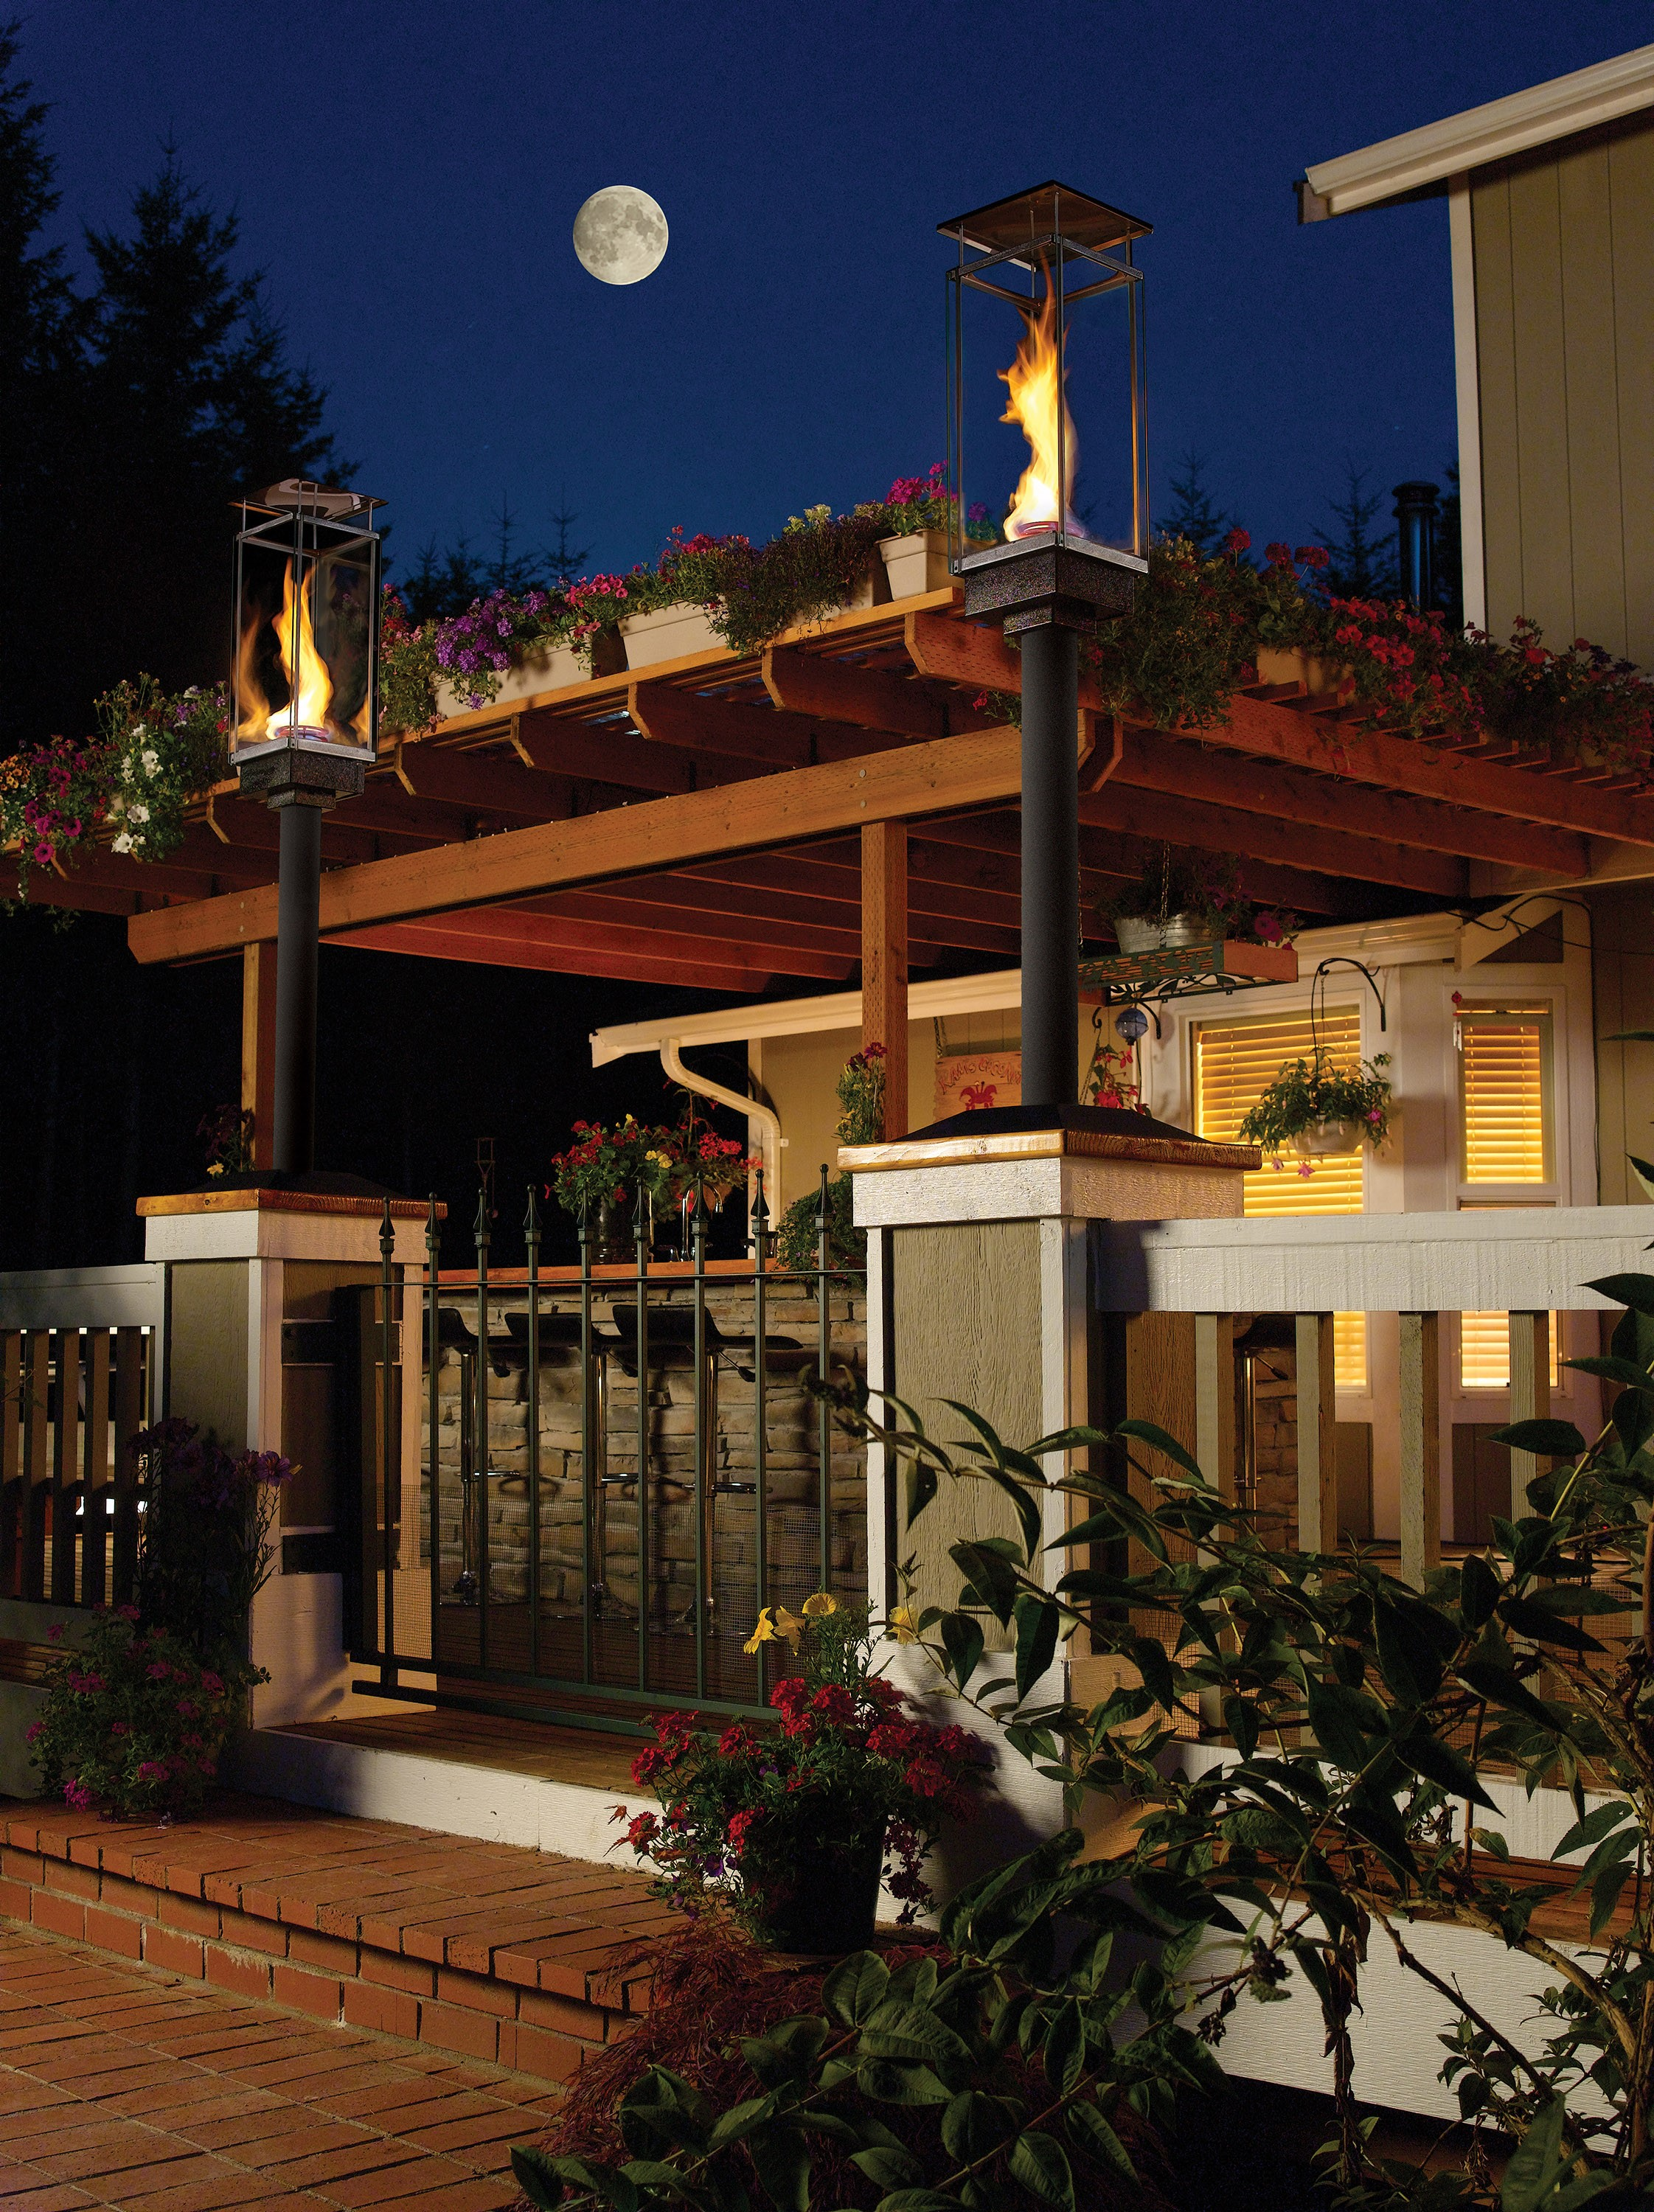 Outdoor gas lamps and lighting tempest torch made in the usa in mukilteo wa and sold across the world workwithnaturefo